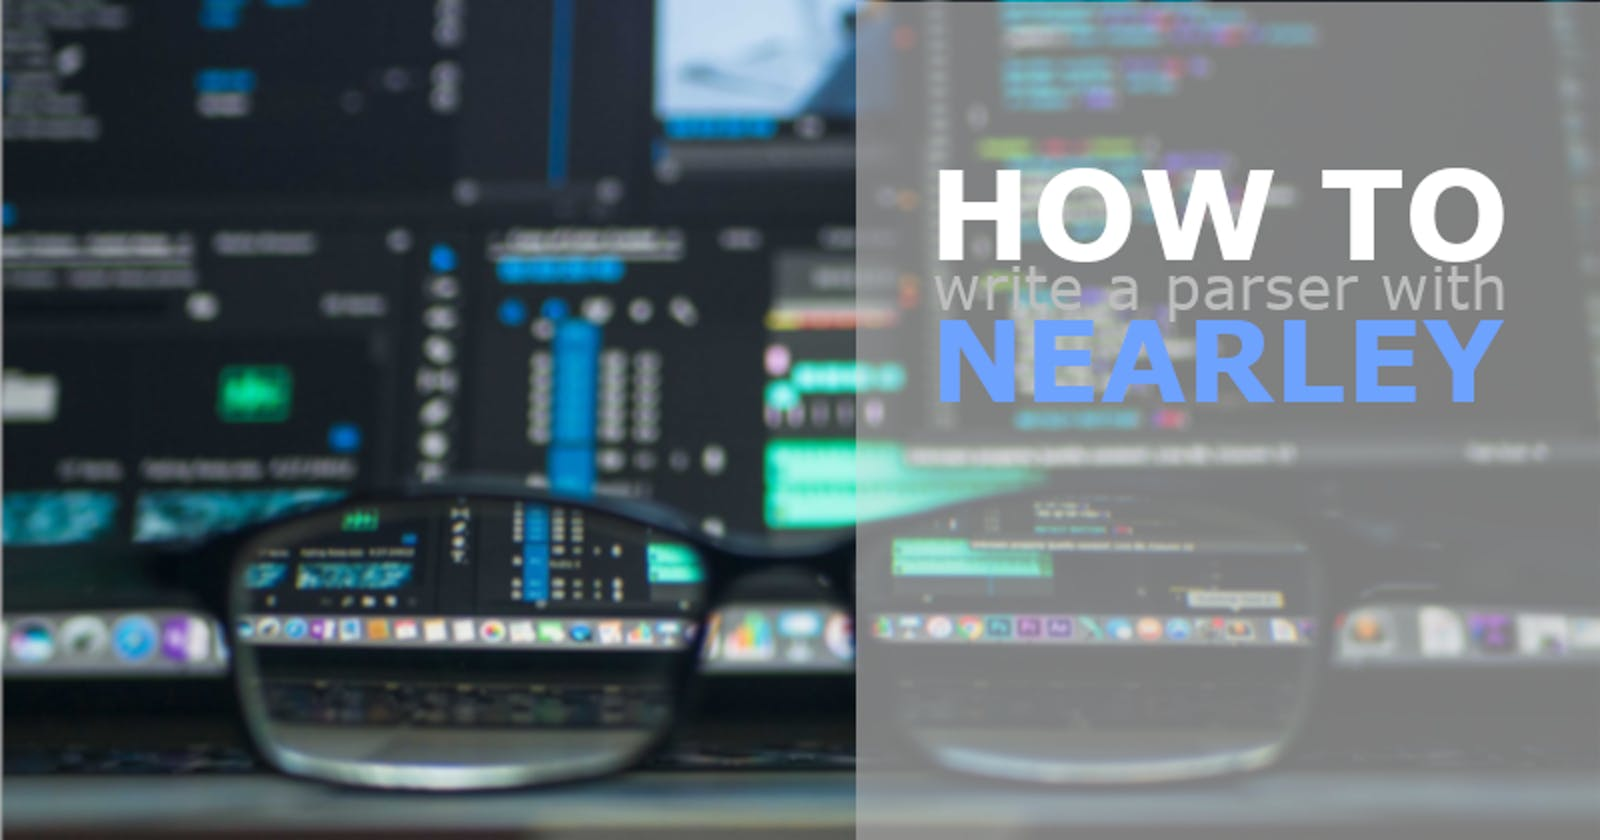 How to write a parser with Nearley